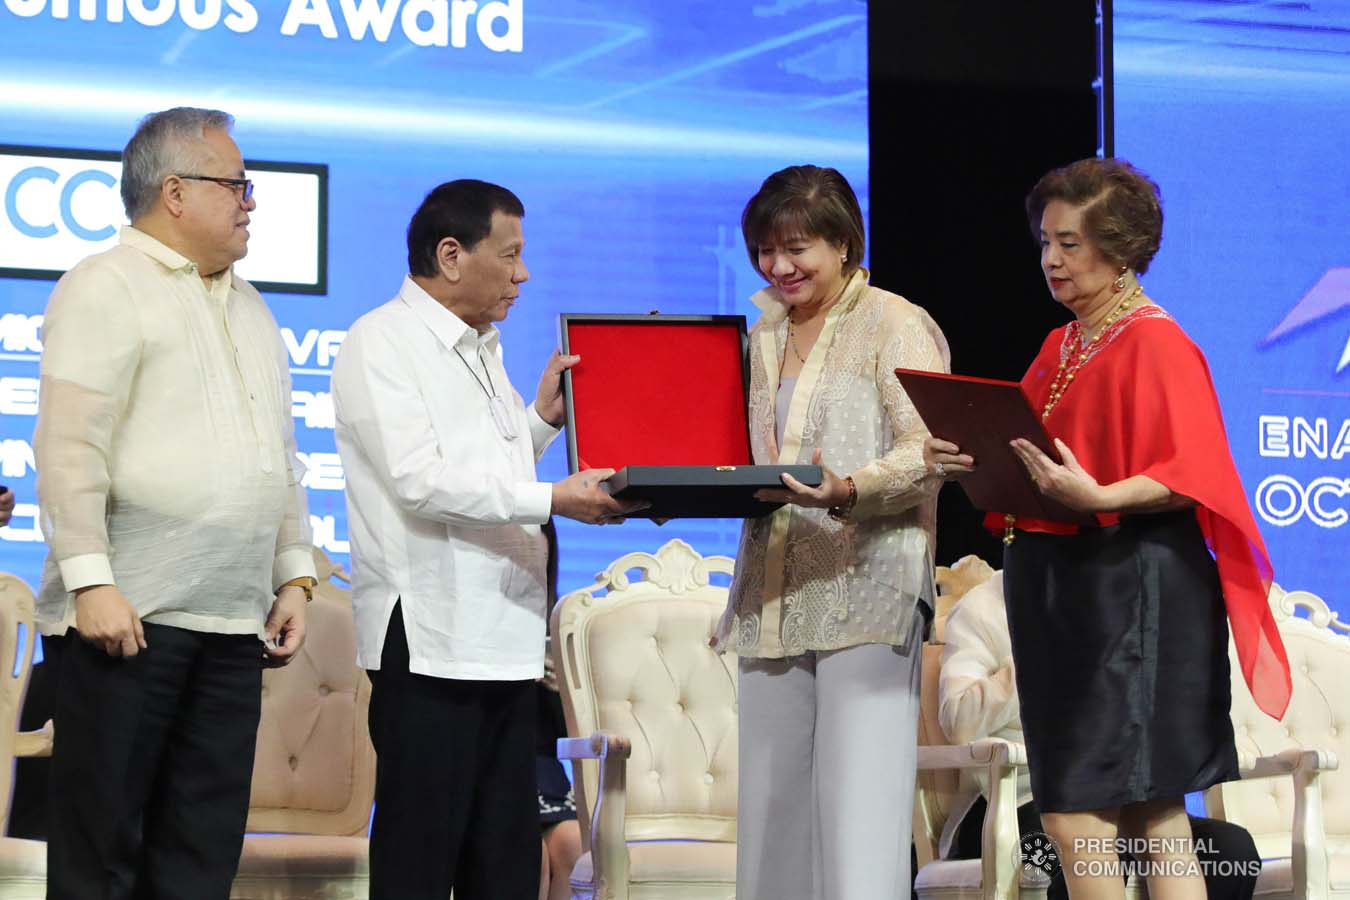 President Rodrigo Roa Duterte posthumously confers the International Chamber of Commerce (ICC) Global Posthumous Award on Miguel Varela during the 45th Philippine Business Conference and Expo at The Manila Hotel on October 17, 2019. Receiving the award are his daughter Michell and wife Cecille. ROBINSON NIÑAL JR./PRESIDENTIAL PHOTO